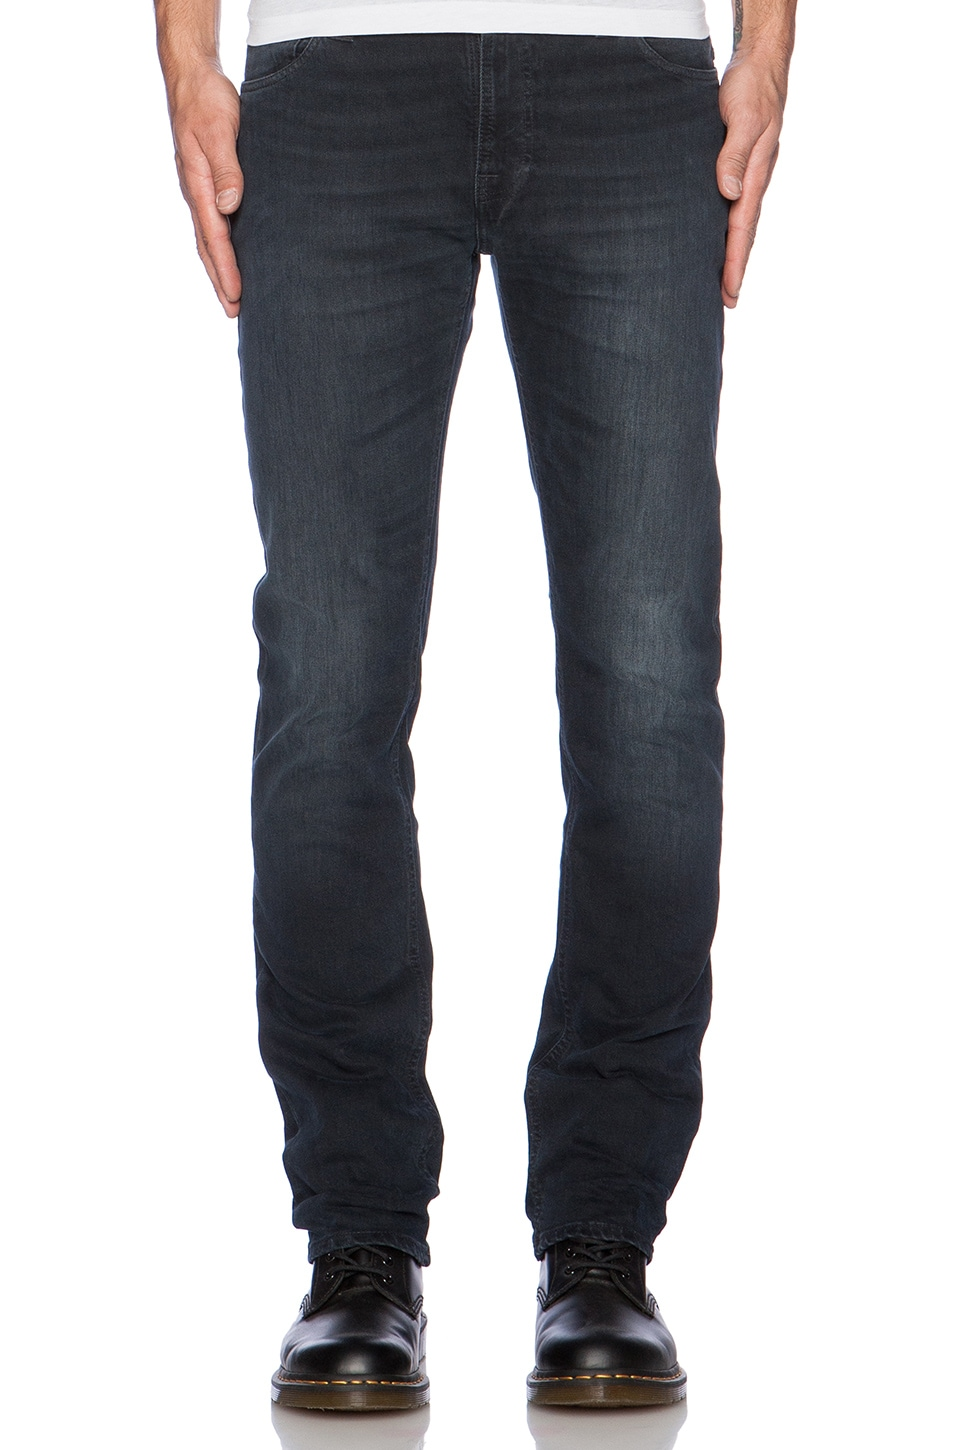 Nudie Jeans Thin Finn in Org. Black and Grey